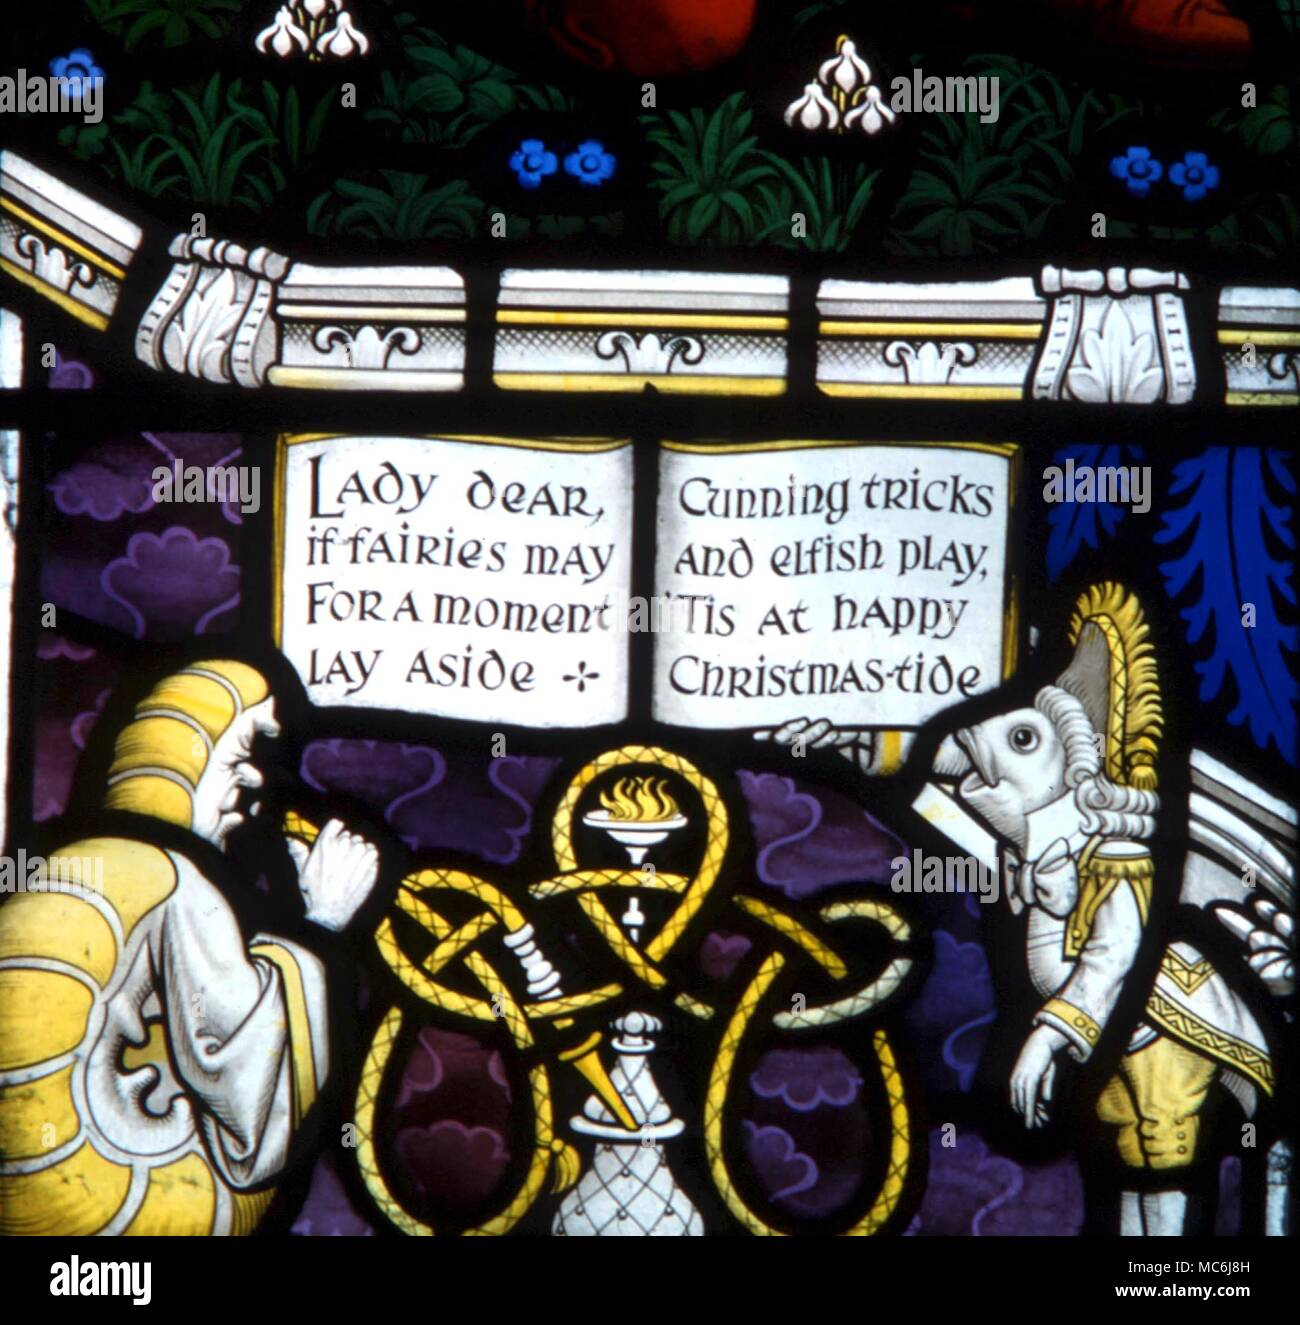 FAIRY STORIES - Caterpillar with hooker.  Detail from the stained glass window dedicated to Lewis Carroll, in which his fairytale characters appear.  Daresbury parish church - Stock Image